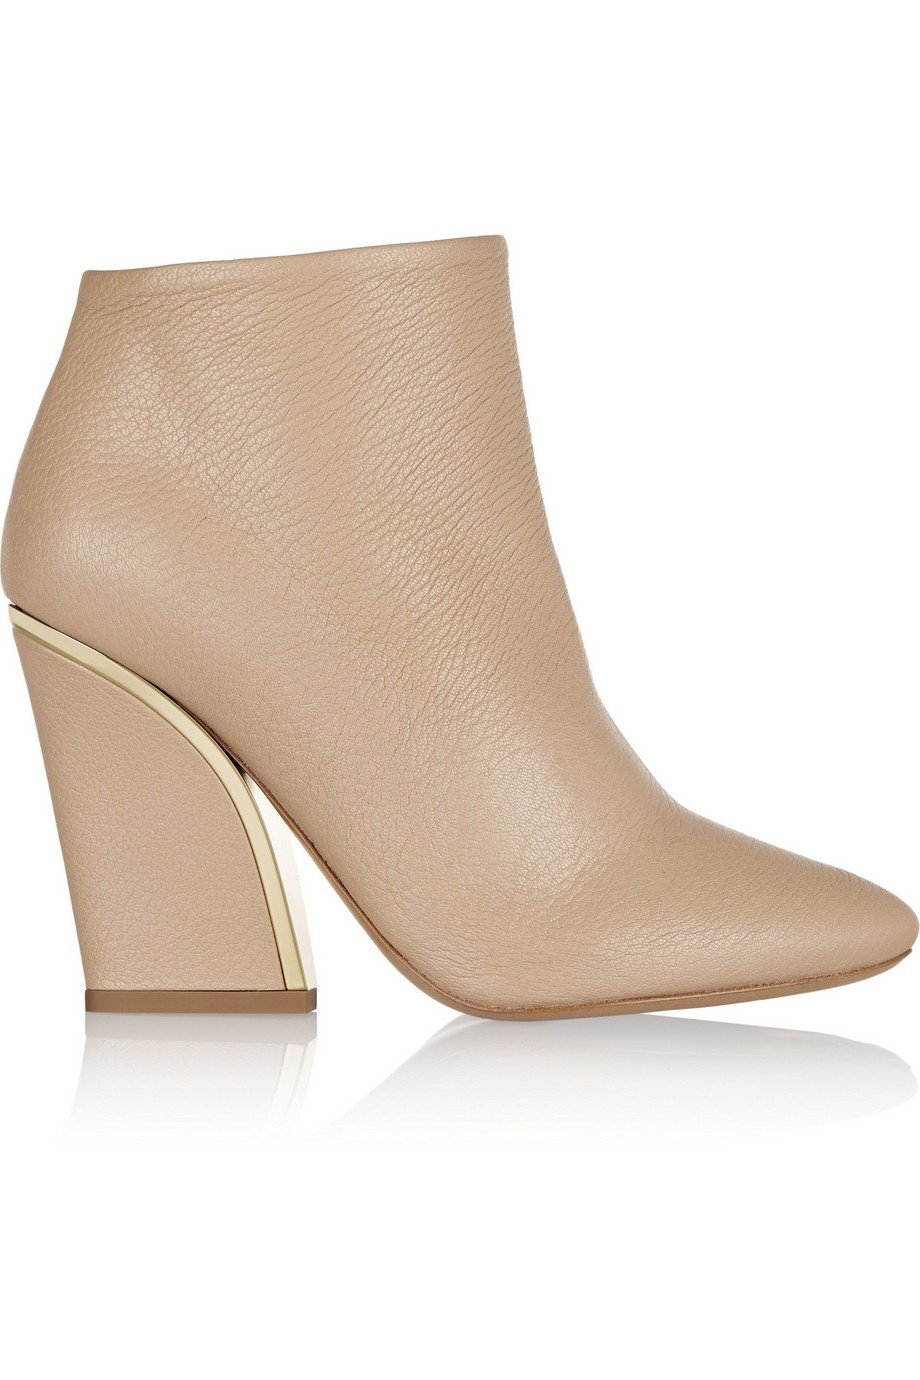 Gold-trimmed textured-leather ankle boots